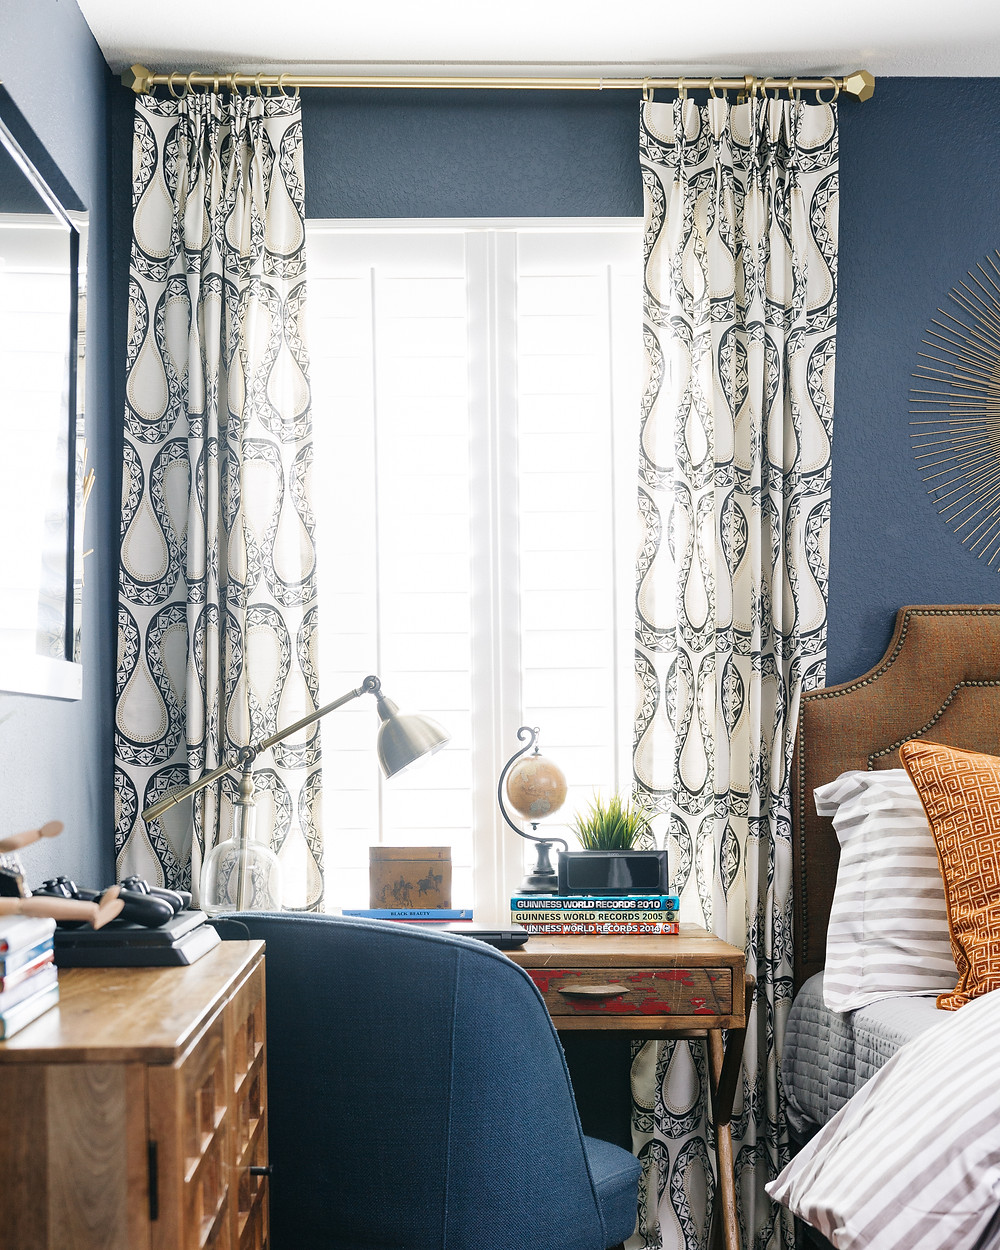 Boy's bedroom in hale navy wall color with custom draperies